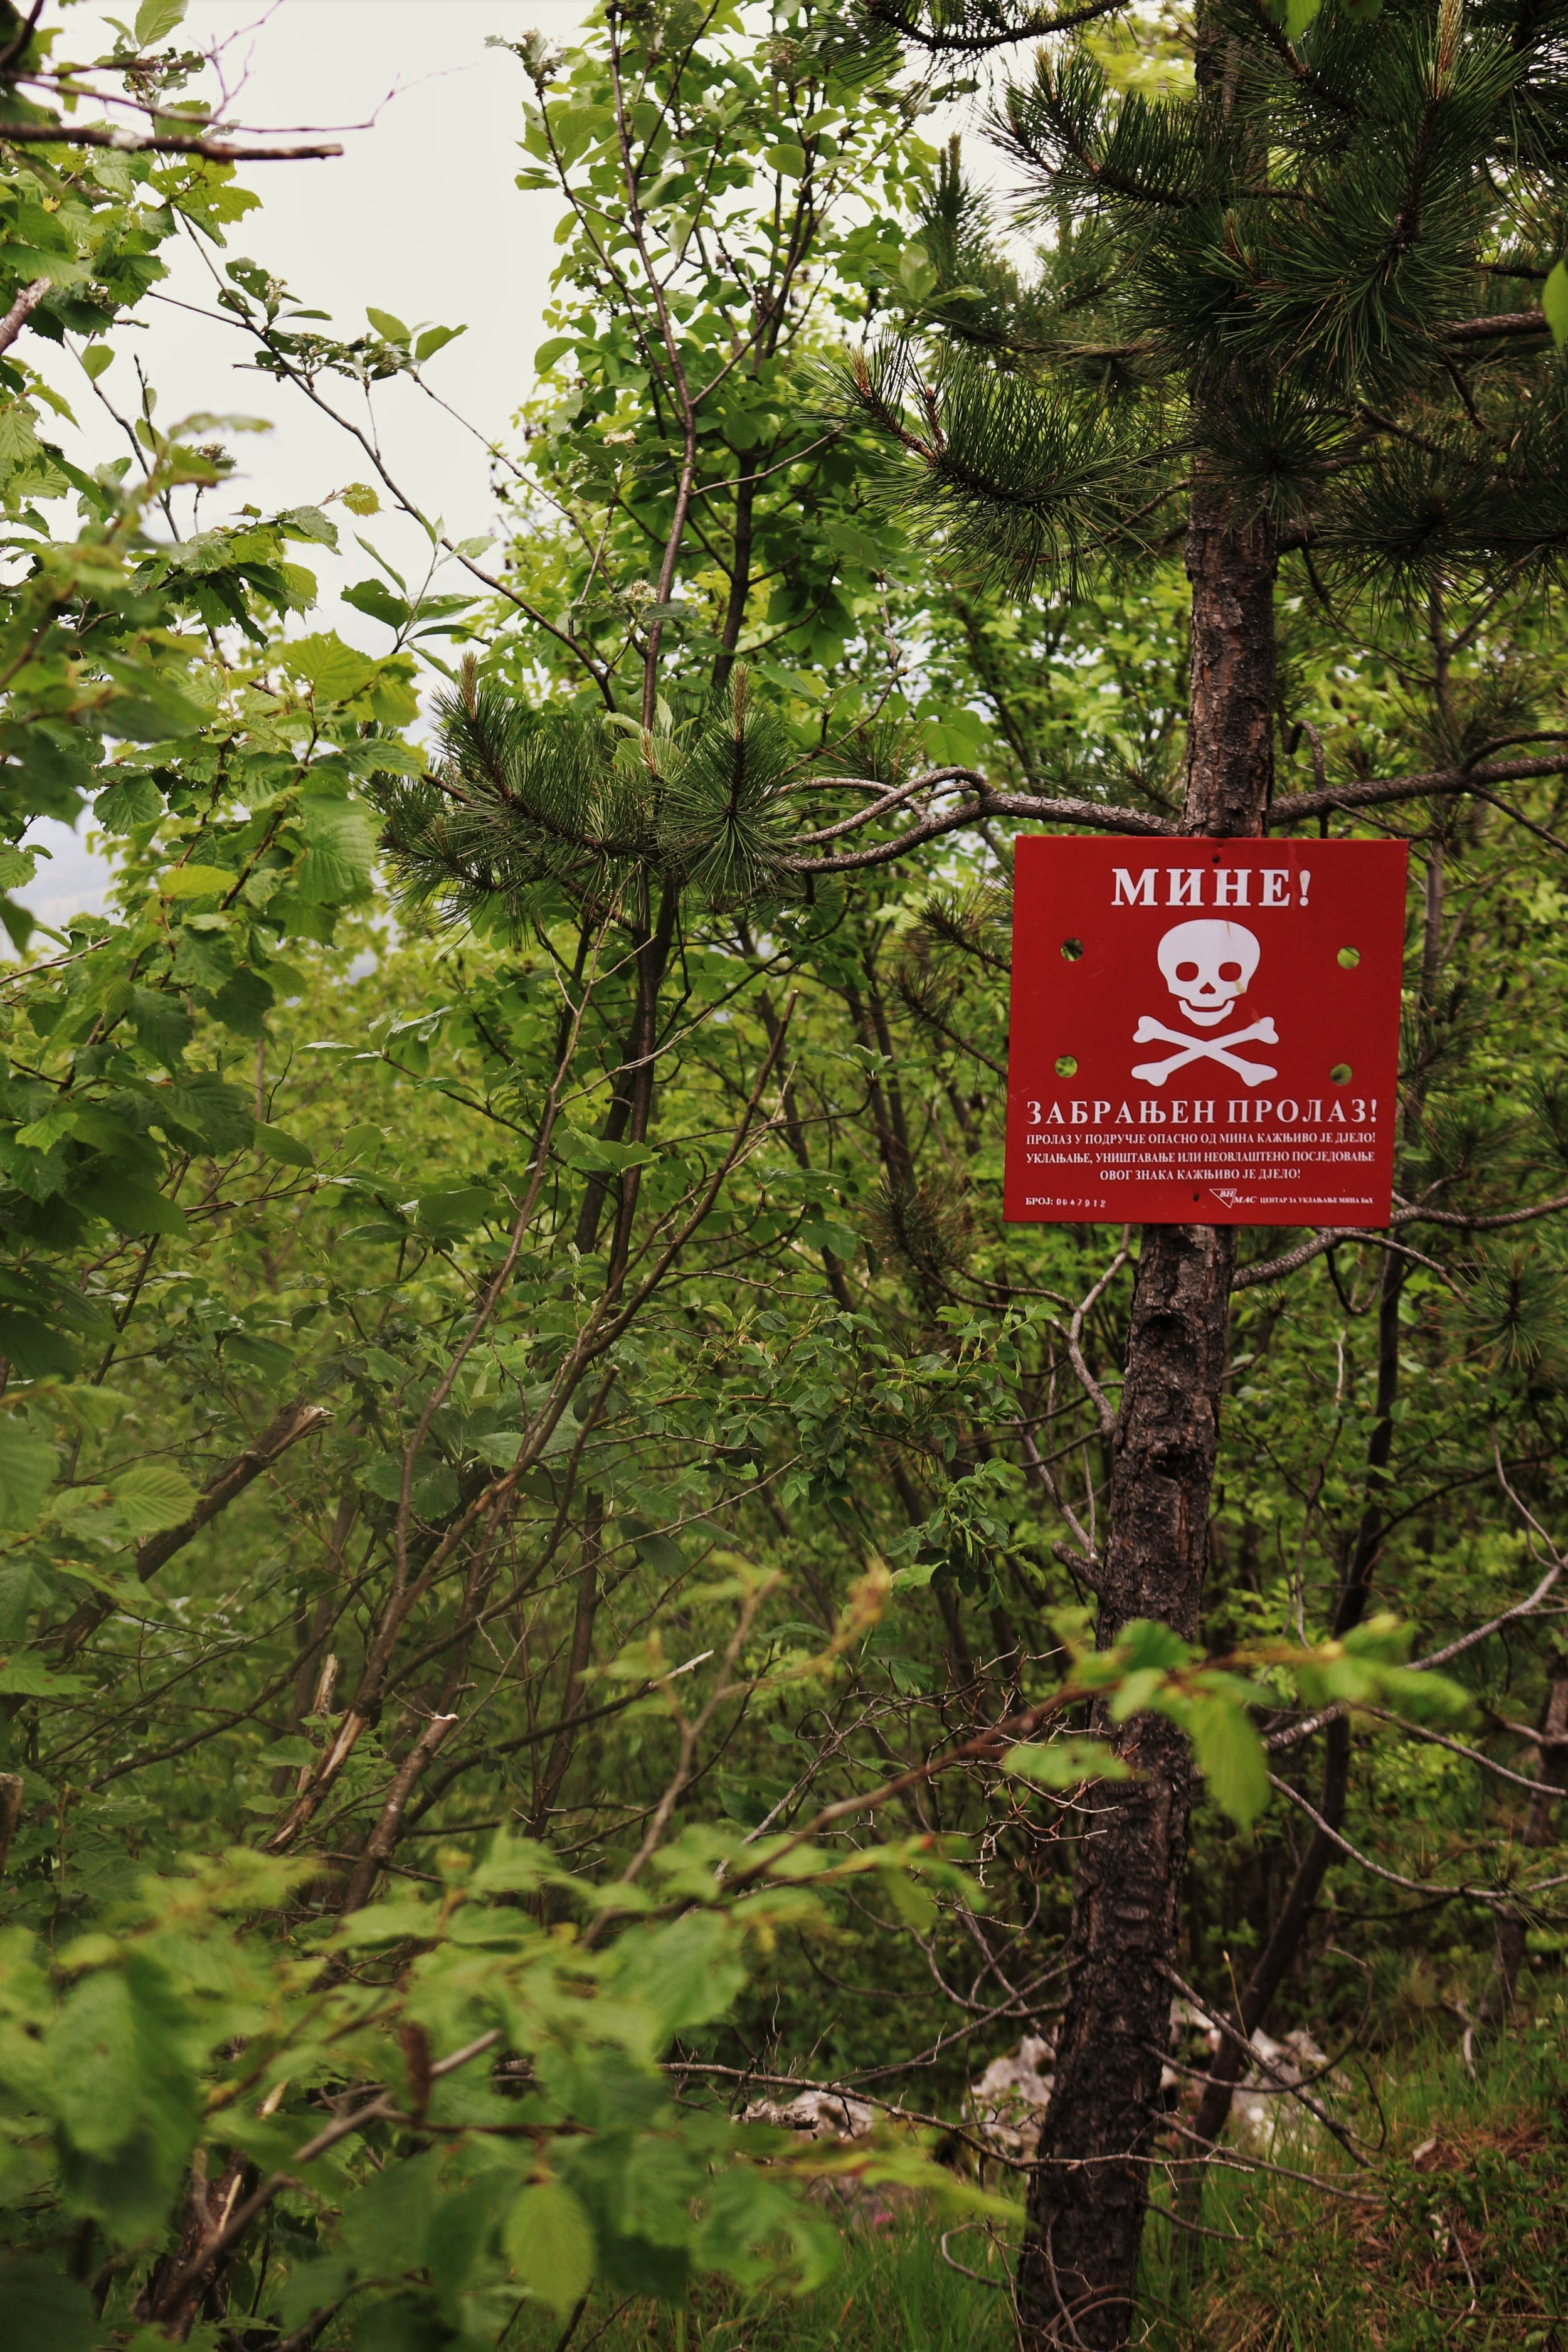 A sign warns of landmines in the immediate area.